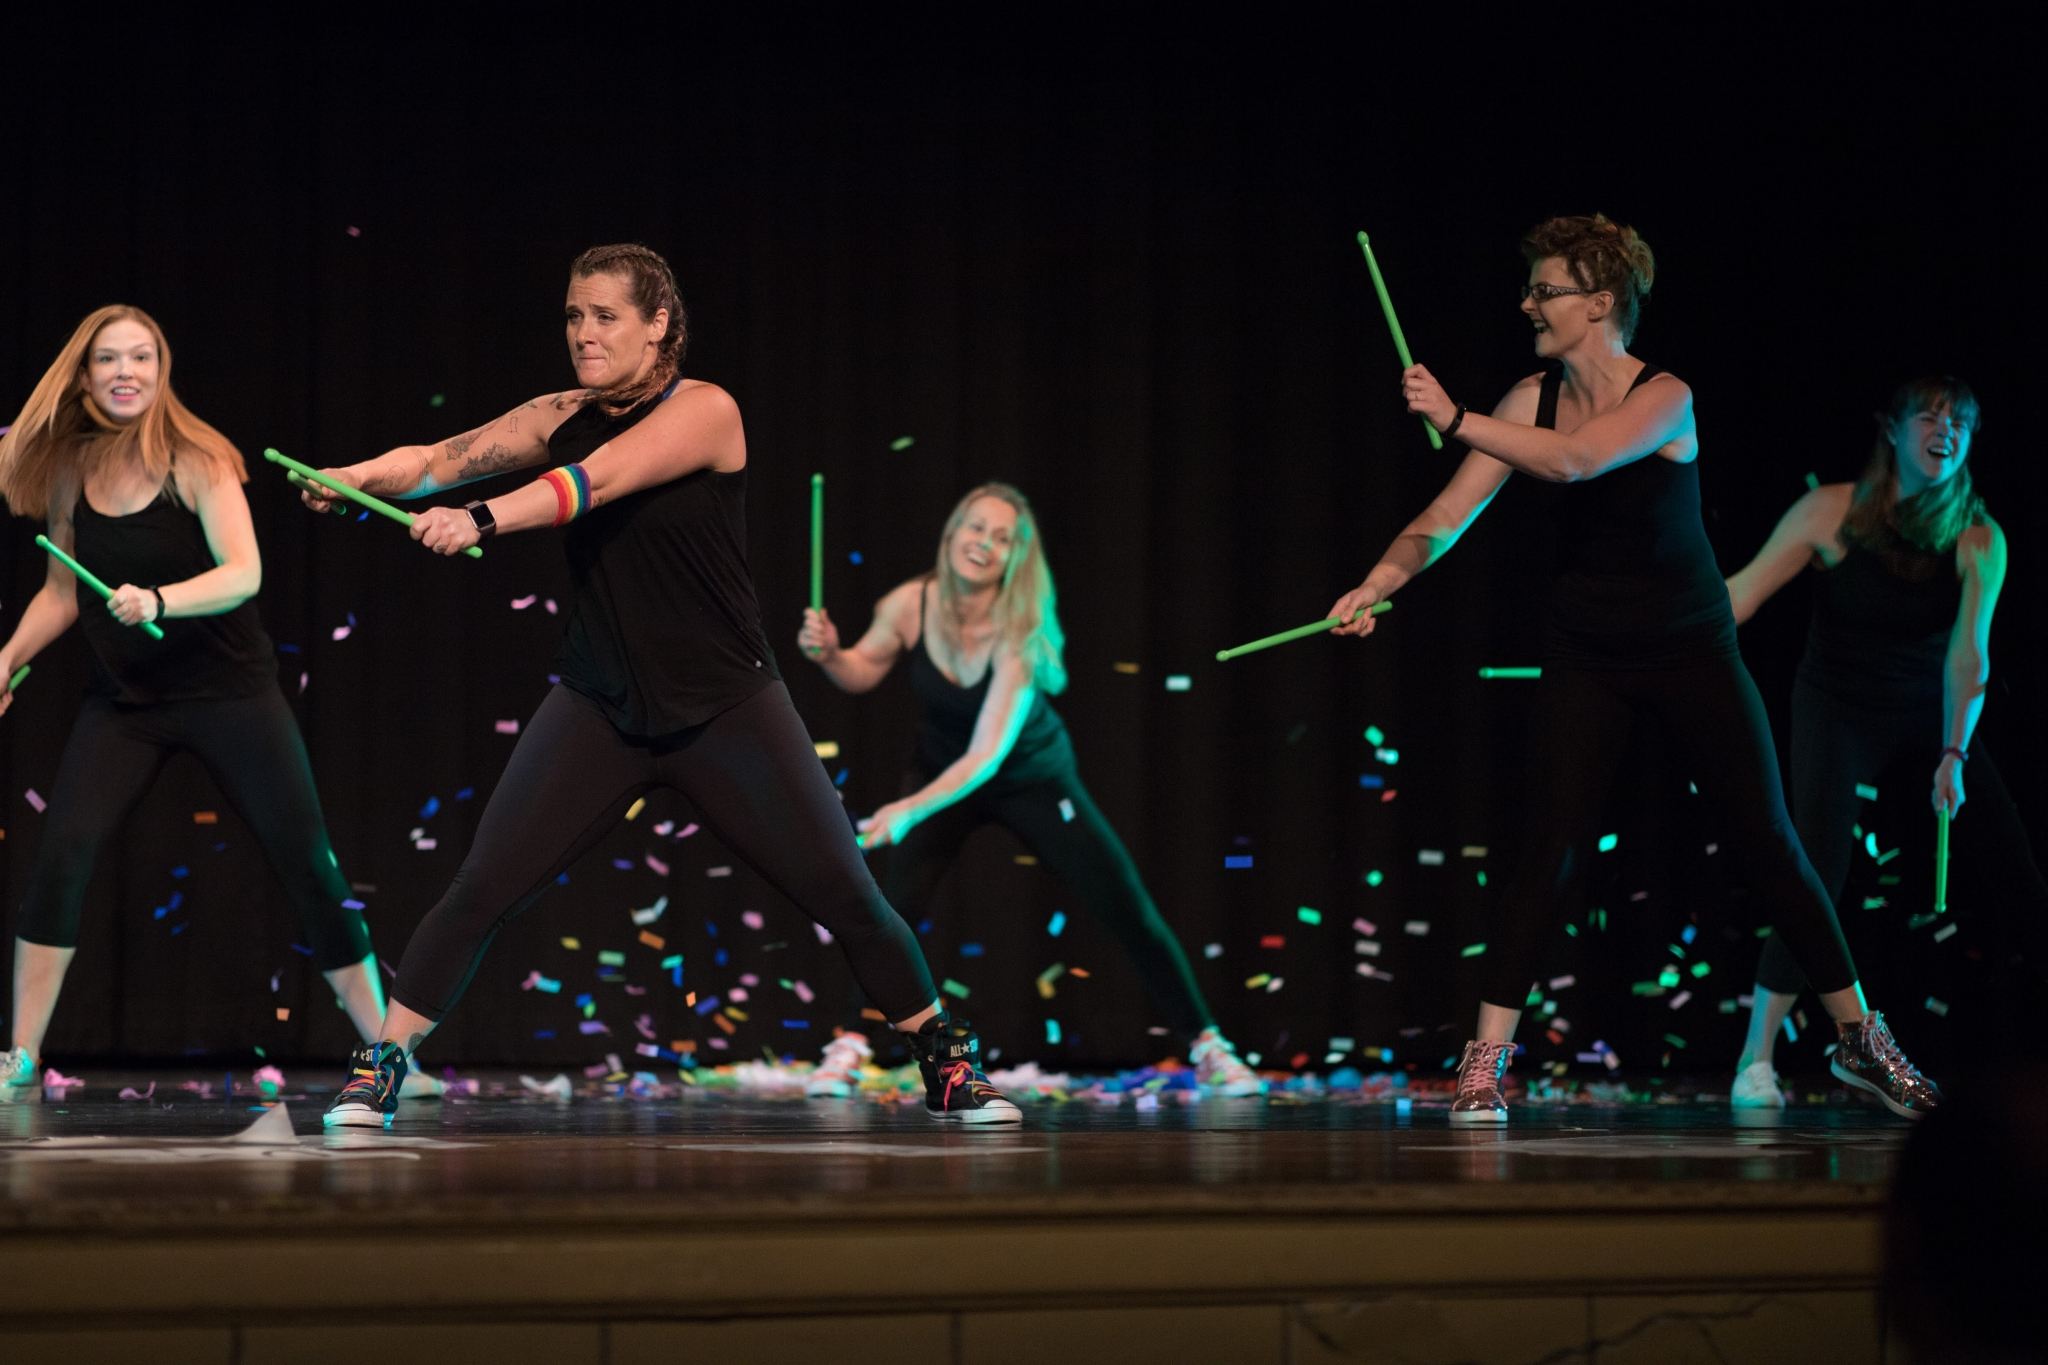 Pound (Dance Fitness with Rip Sticks) - Session 1